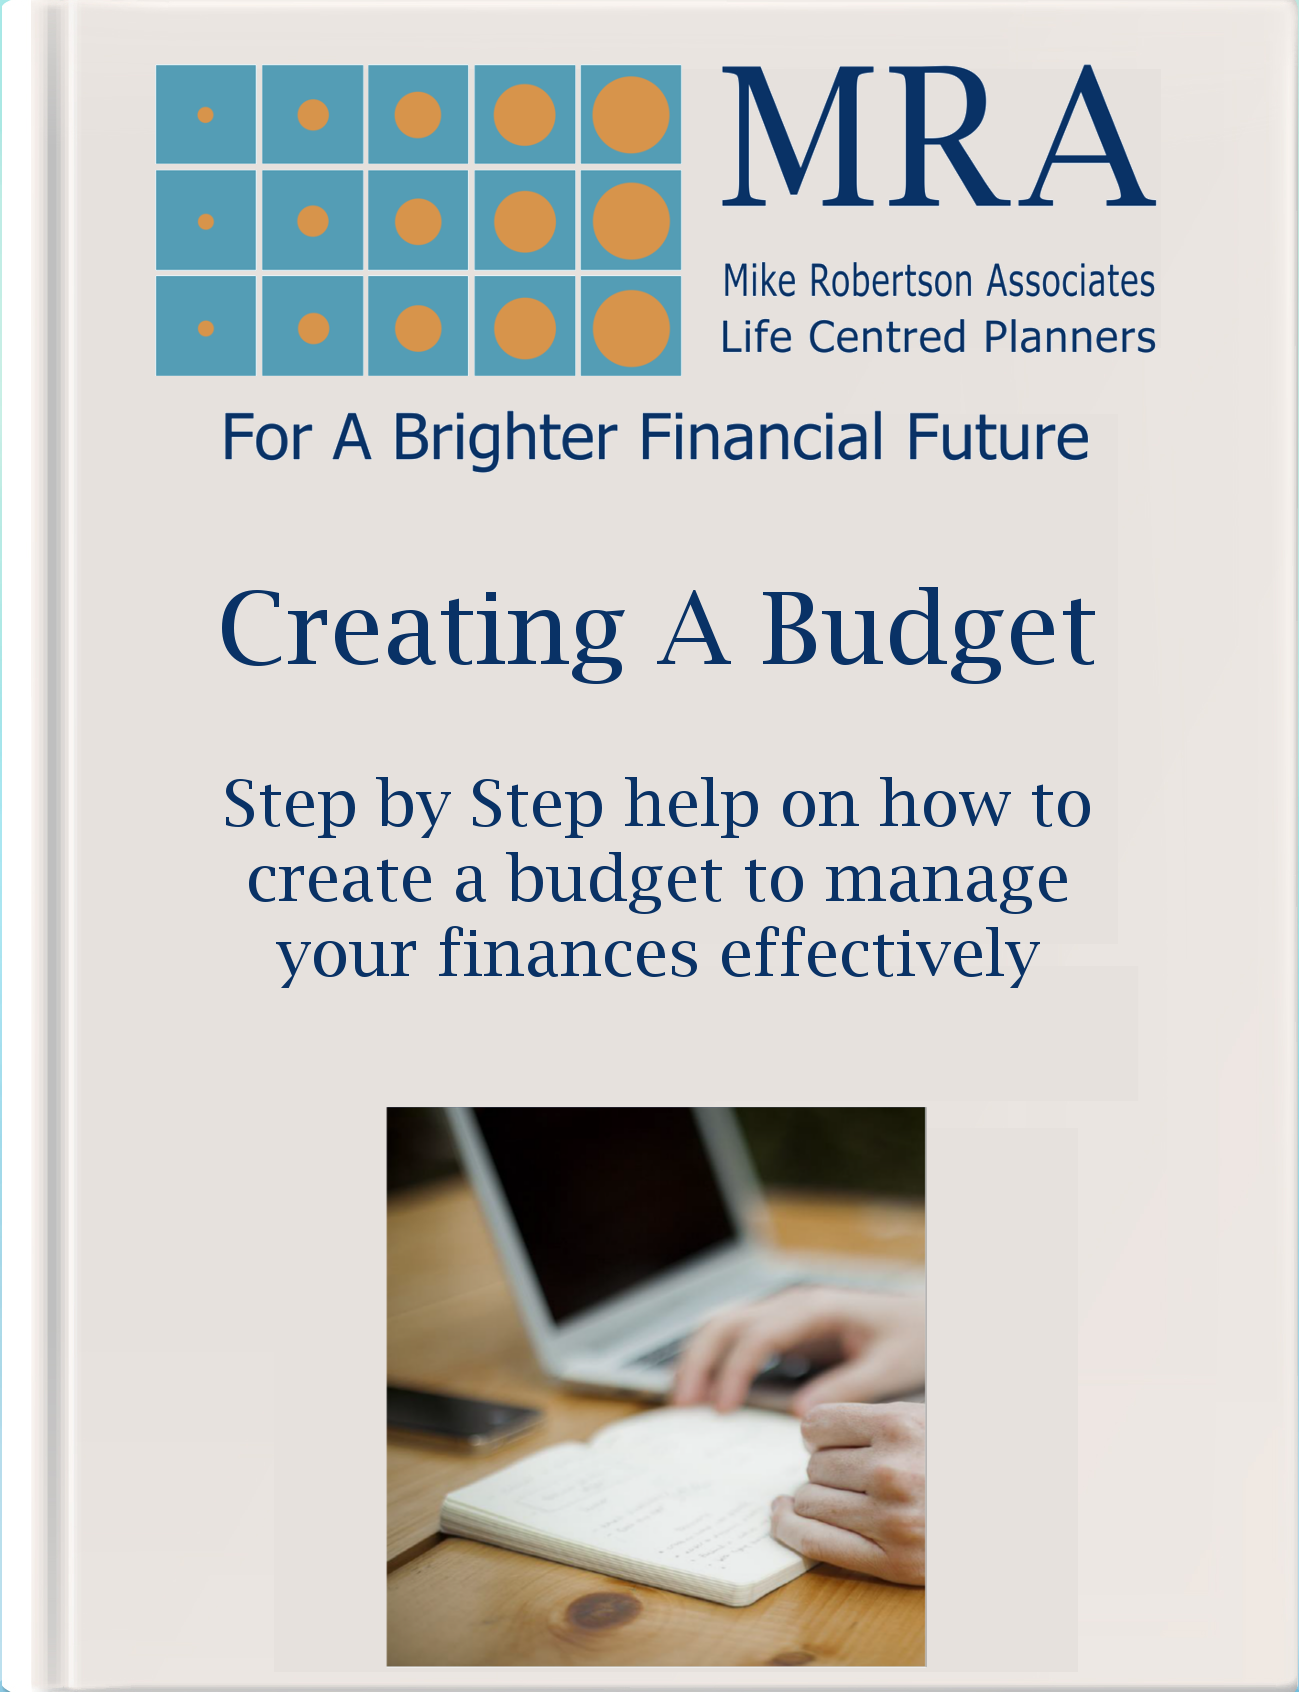 Download our Creating a Budget eBook